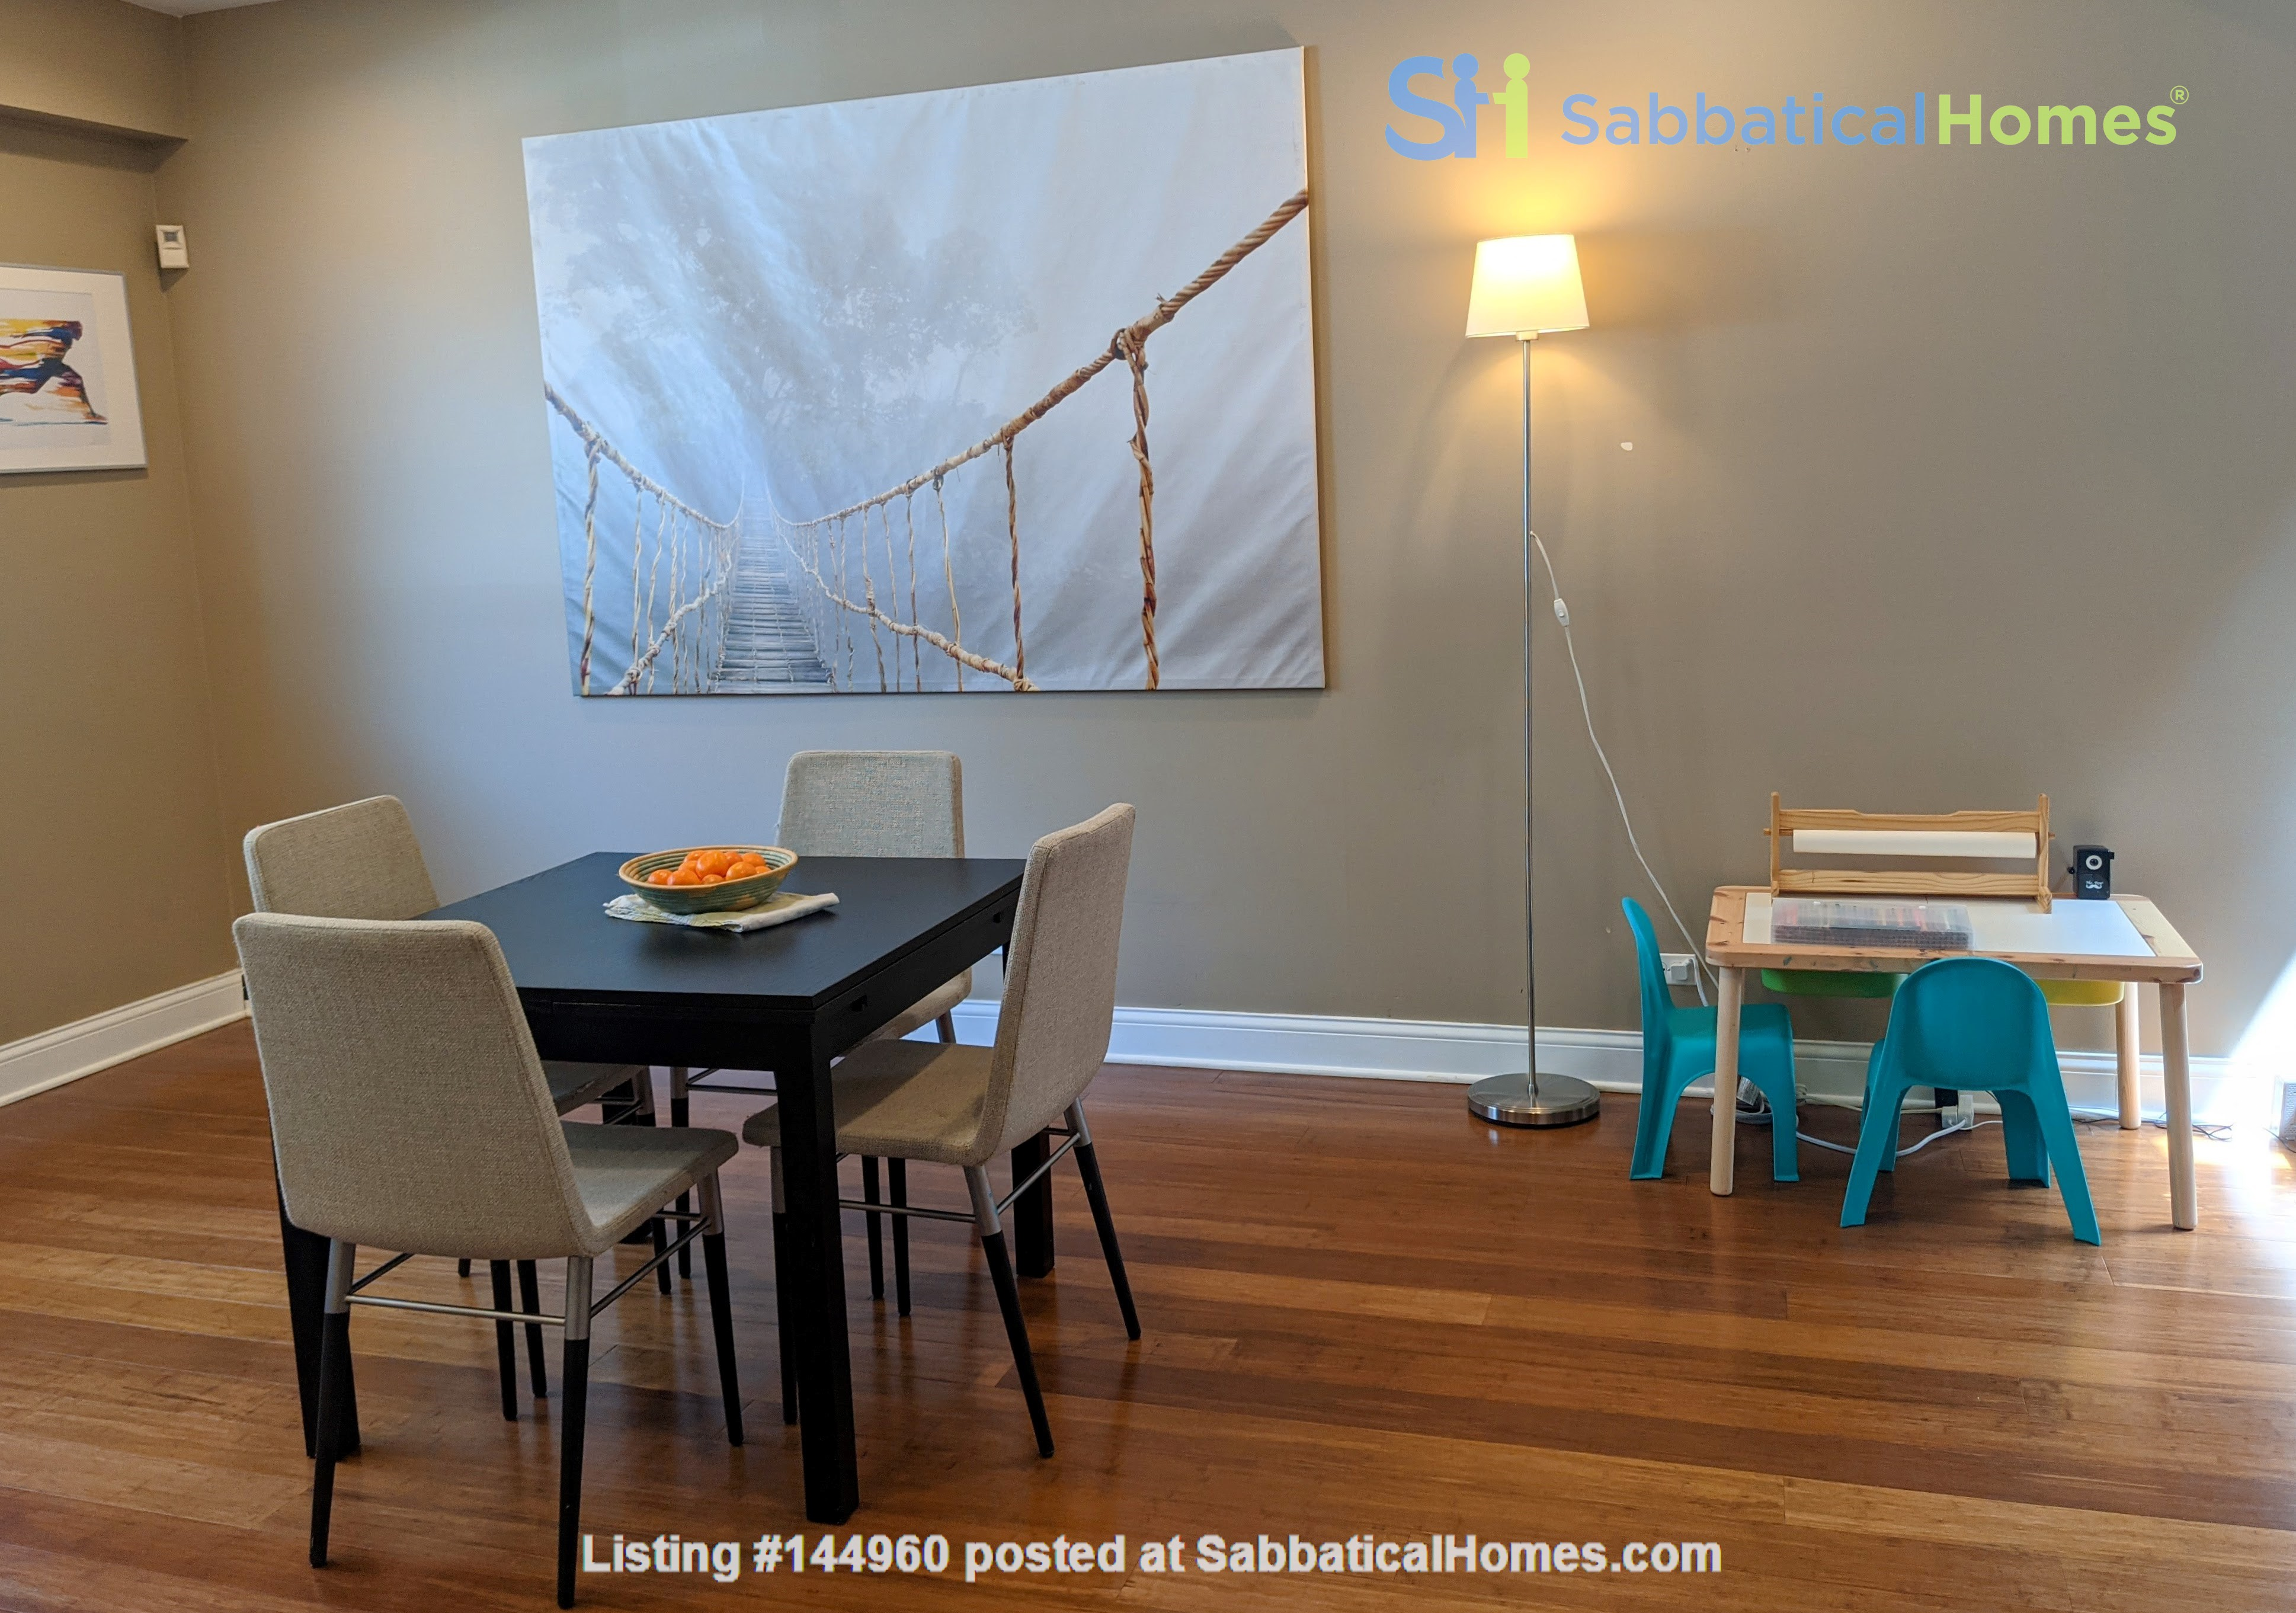 Spacious, fully furnished 3 bd/2.5 ba townhome in Lincoln Park Home Rental in Chicago, Illinois, United States 1